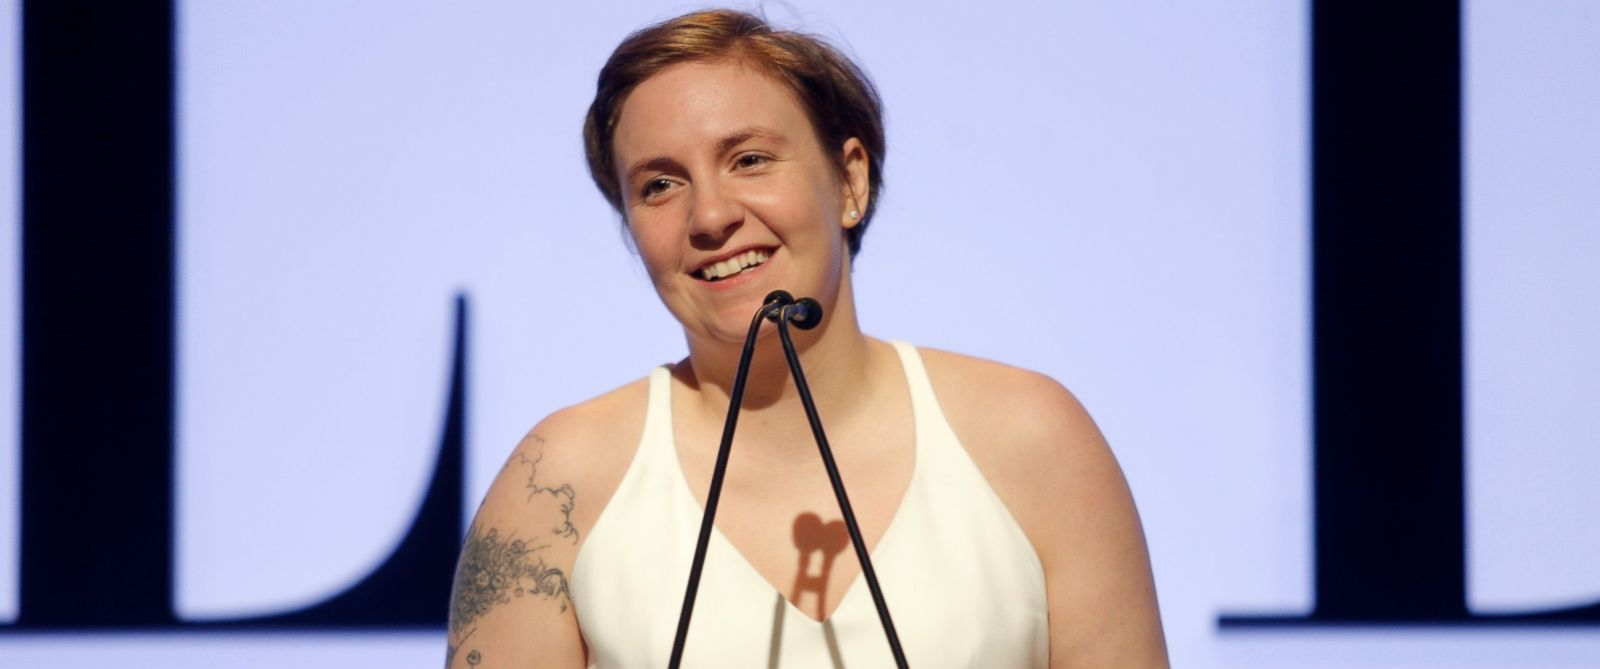 PHOTO: Lena Dunham speaks onstage during the 22nd Annual ELLE Women in Hollywood Awards, Oct. 19, 2015 in Beverly Hills, Calif.